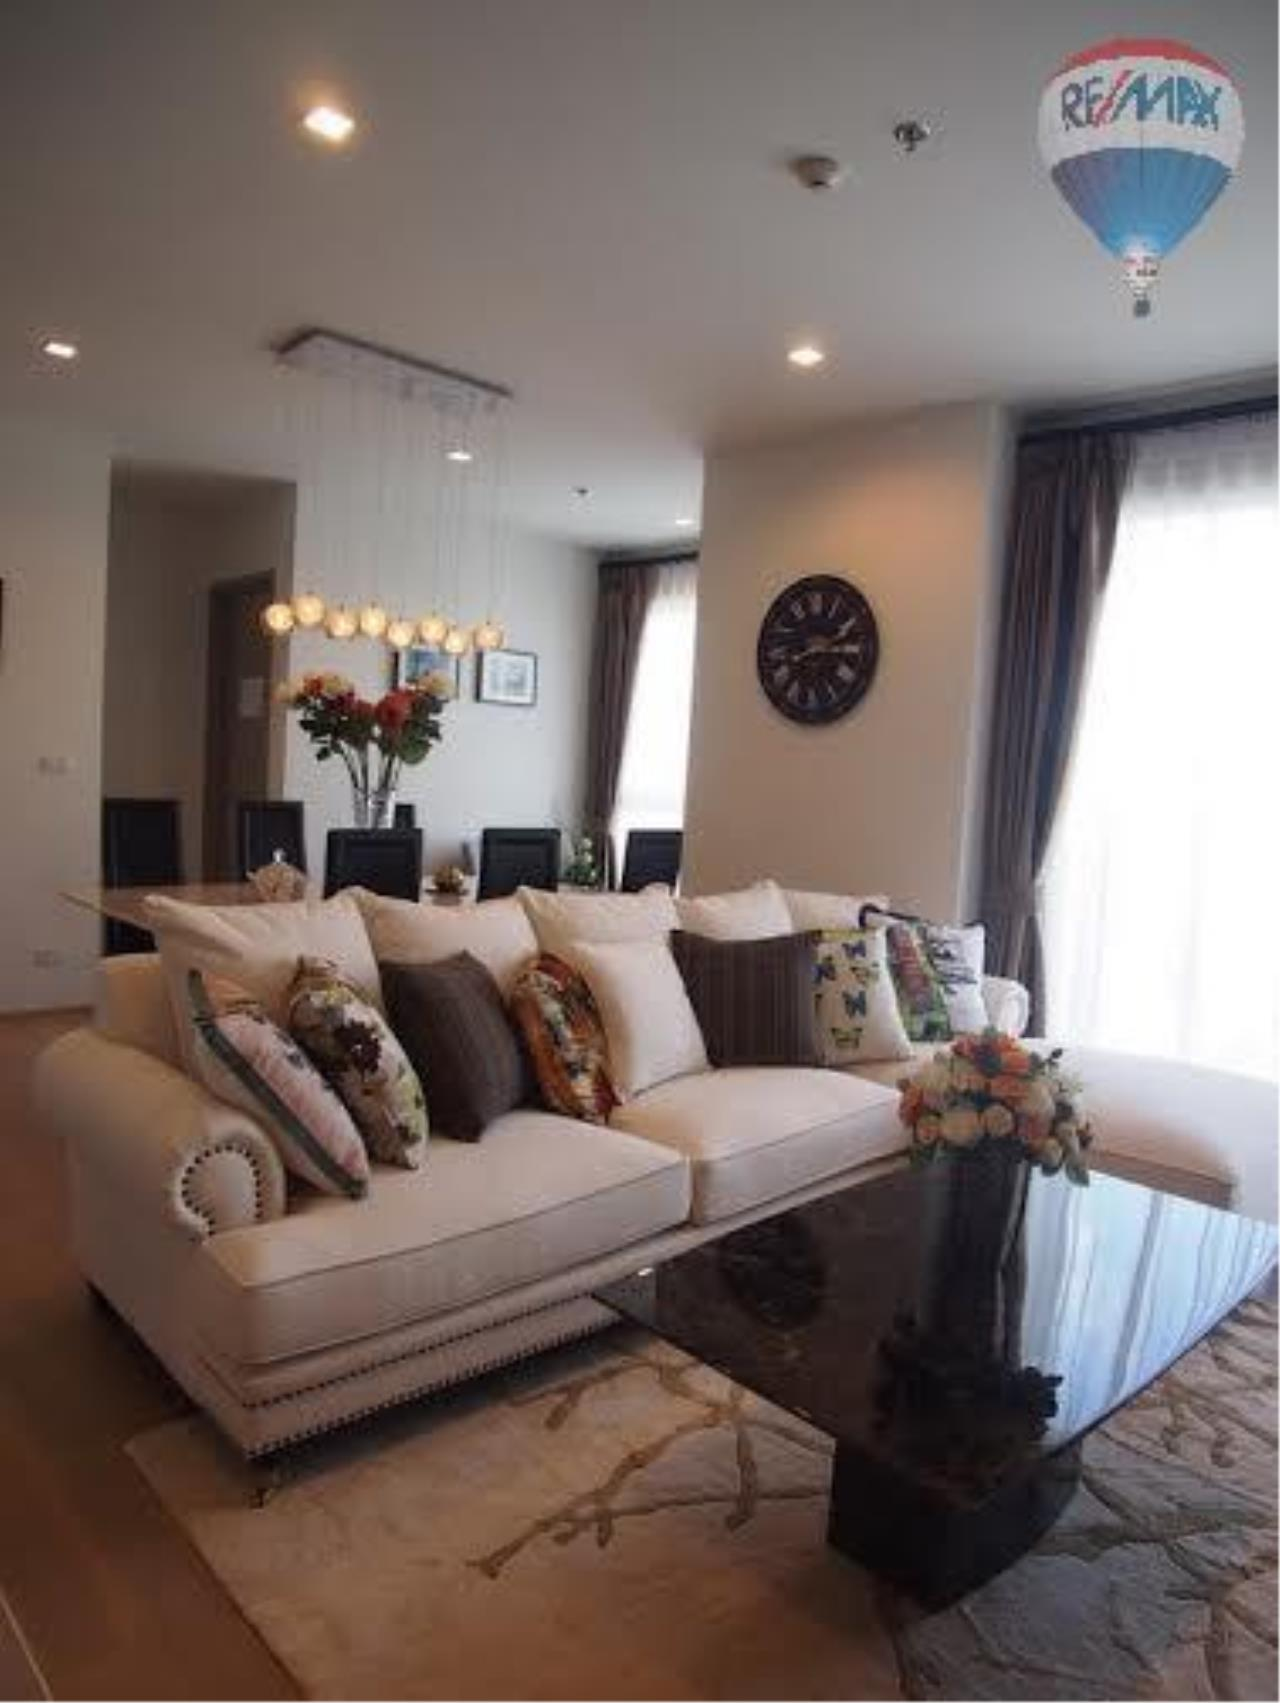 RE/MAX Properties Agency's 2 Bedrooms 100 Sq.M. in HQ by Sansiri for sale 19